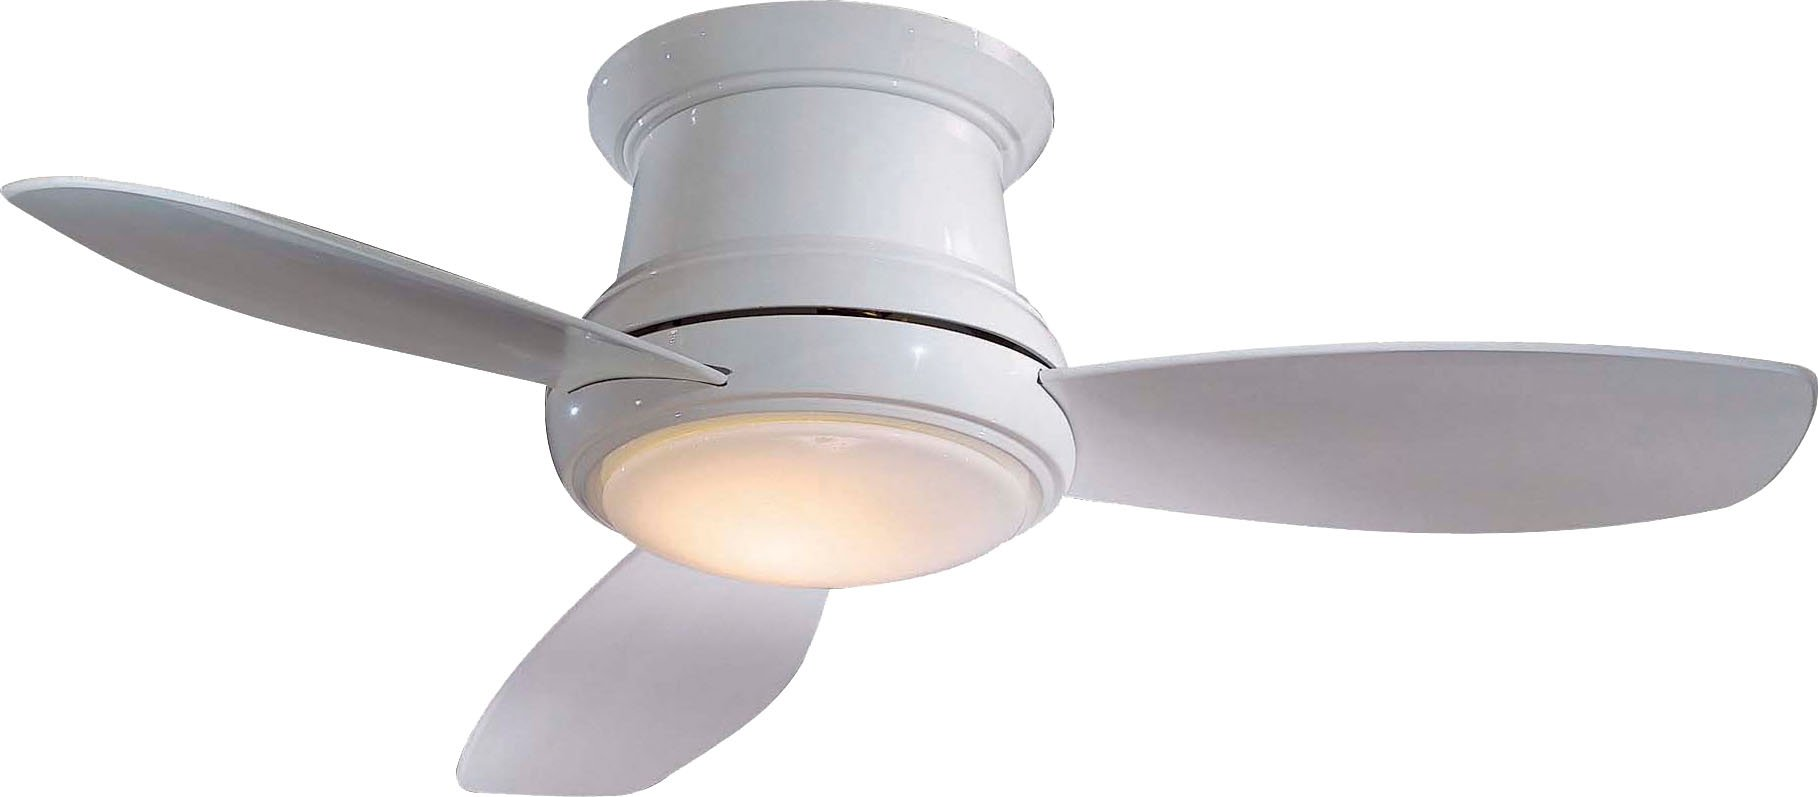 Minka-Aire F519L-WH, Concept II LED White Flush Mount 52'' Ceiling Fan with Light & Remote Control